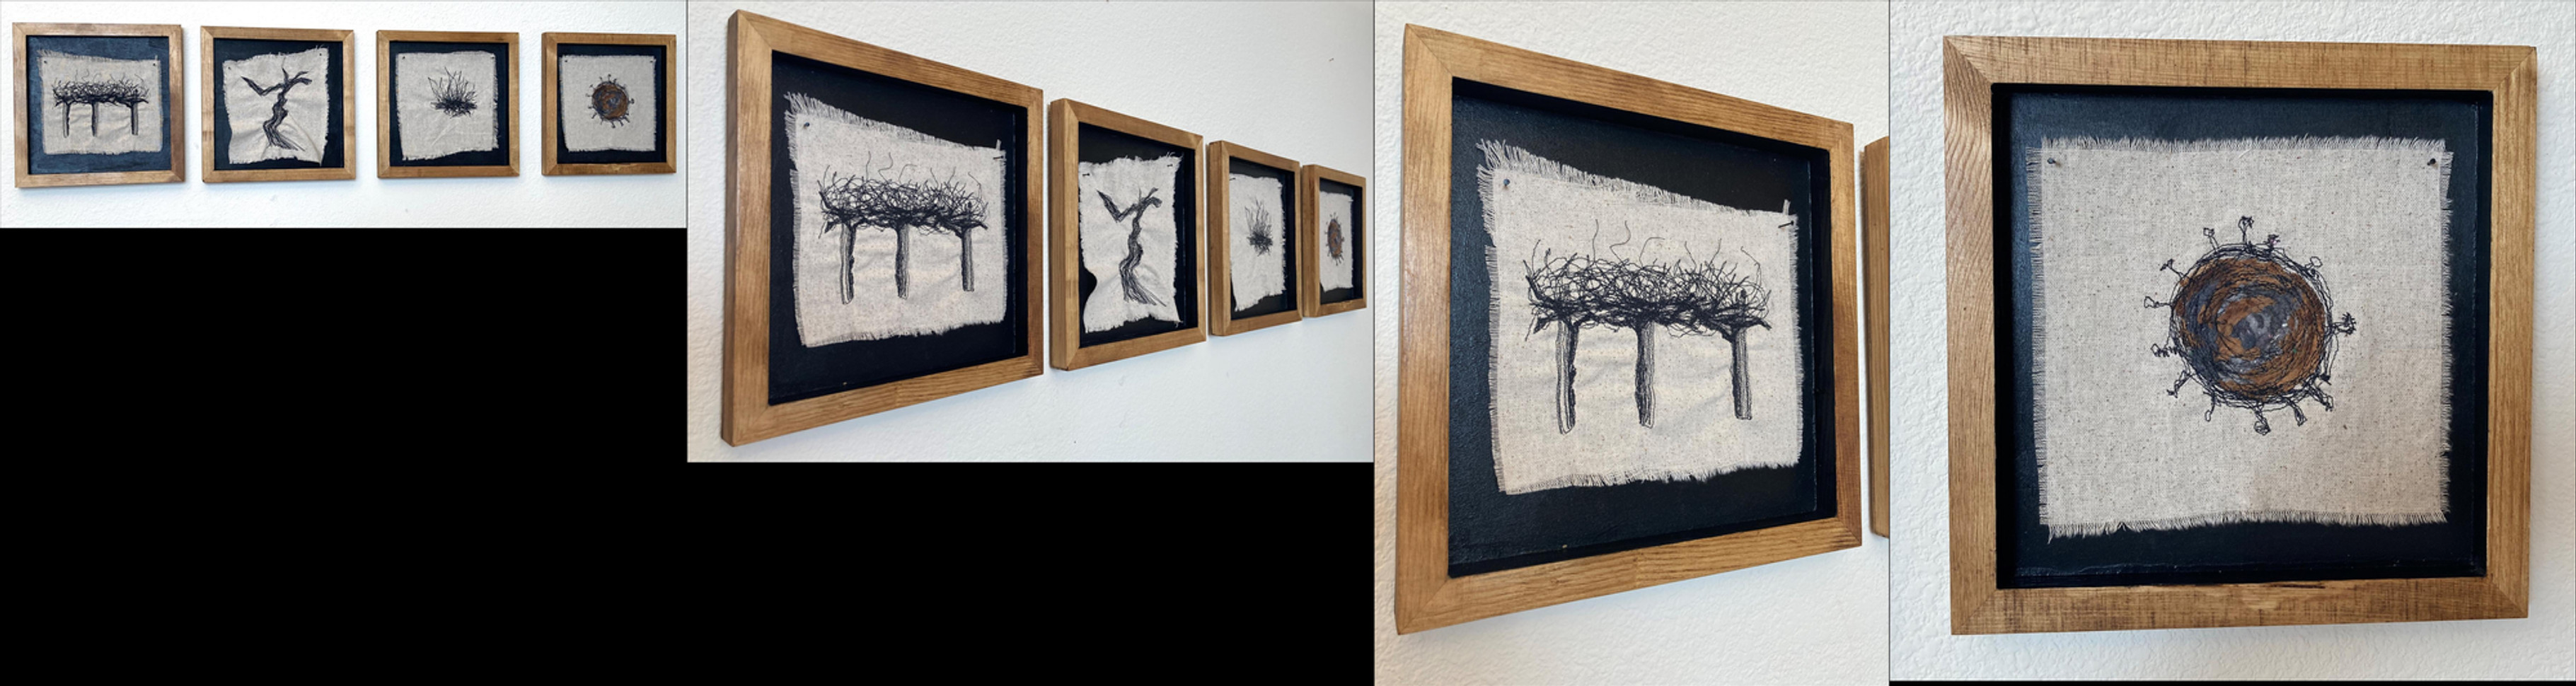 "Michelle Park (Turlock) A California Story (Interrupted) embroidered cloth with mixed media on wood, 10"" x 44"" x 0.75"" $195"